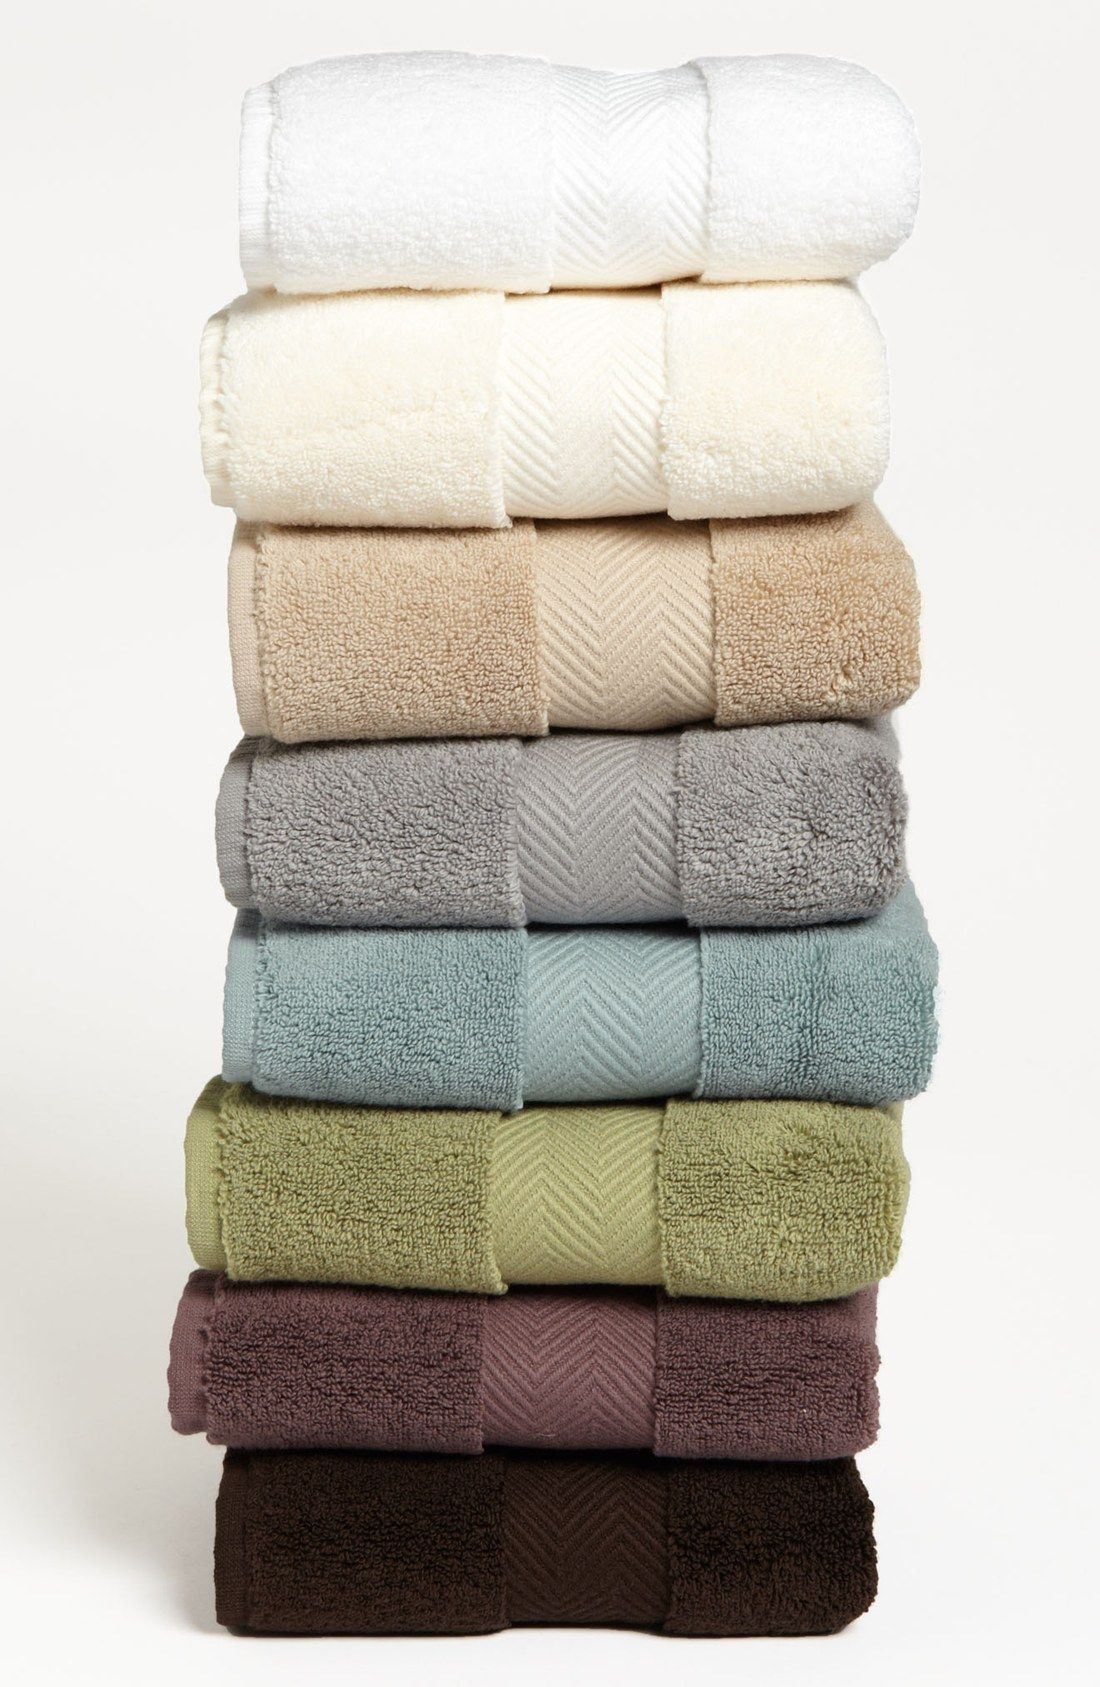 Hydrocotton Bath Towels Custom Now This Looks Comfy  Hydrocotton Ultra Soft Hand Towel Design Inspiration